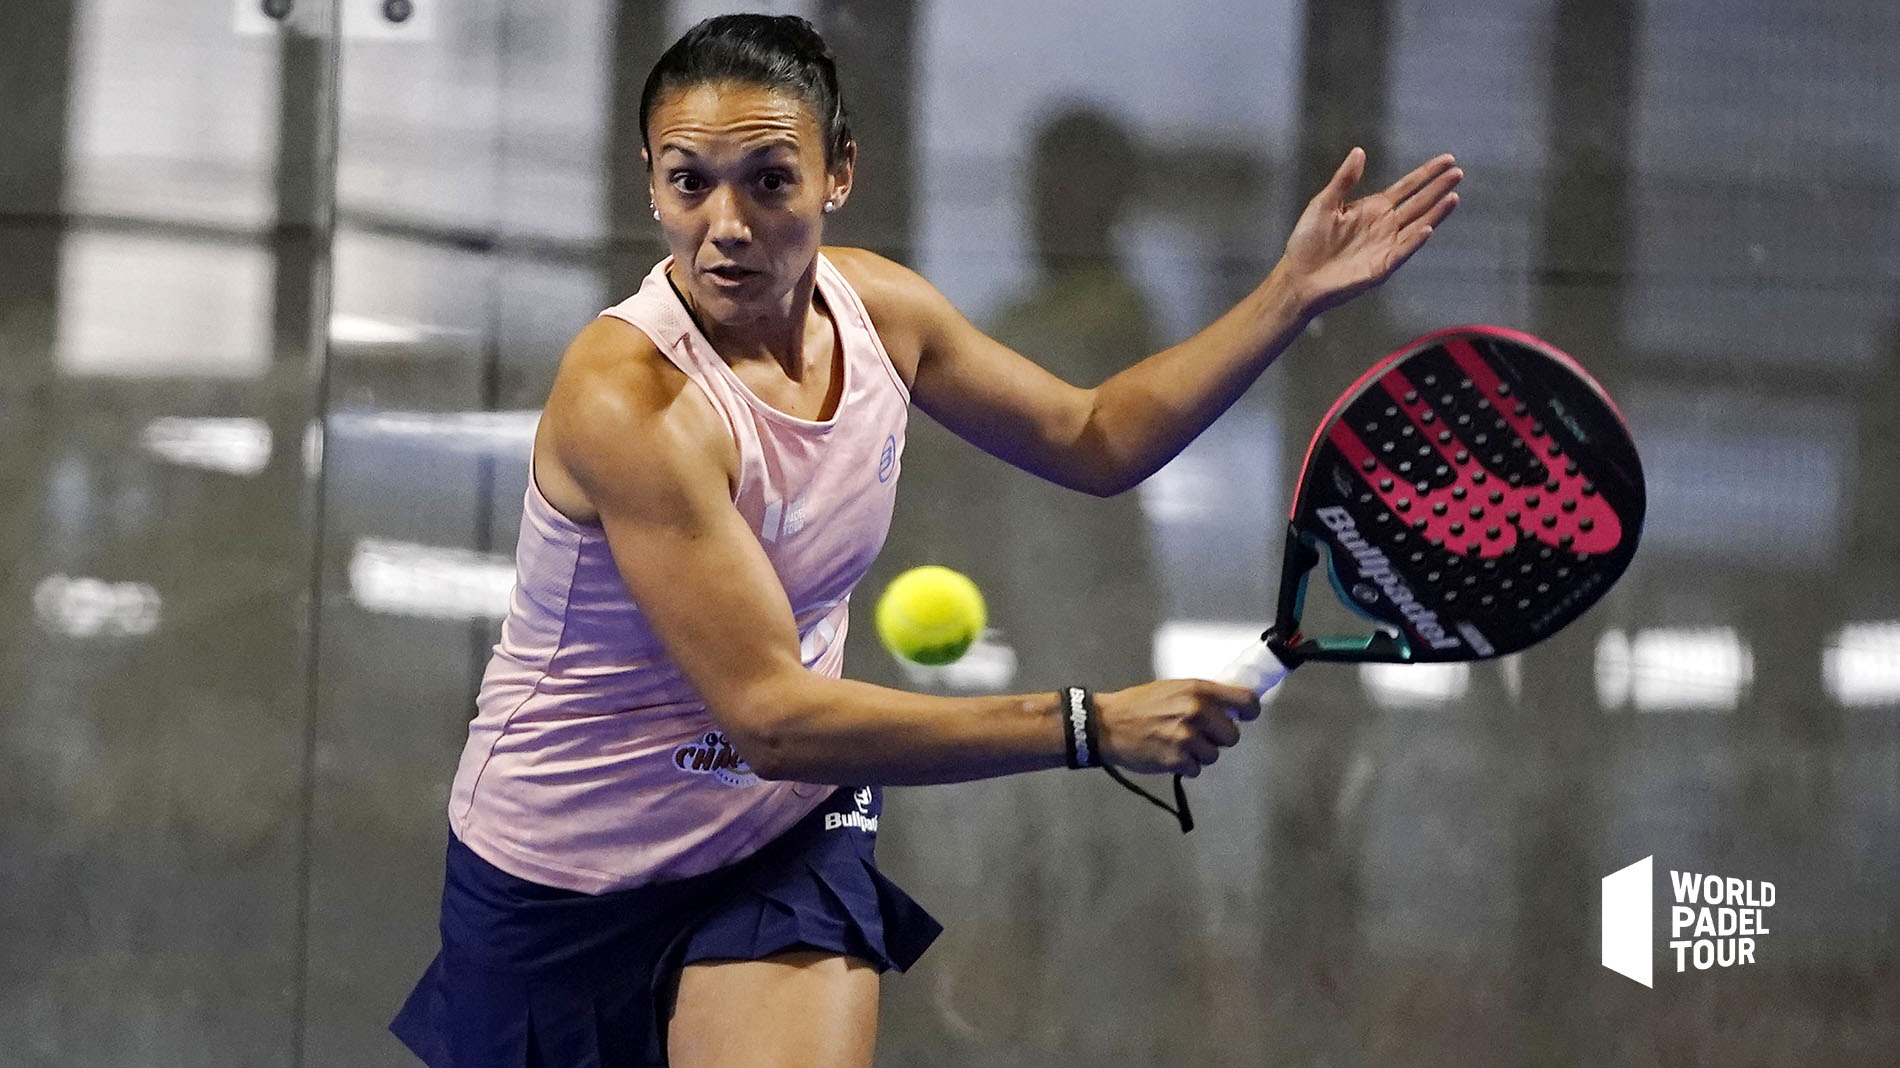 Virginia Riera - Dieciseisavos - Vuelve A Madrid Open 2020